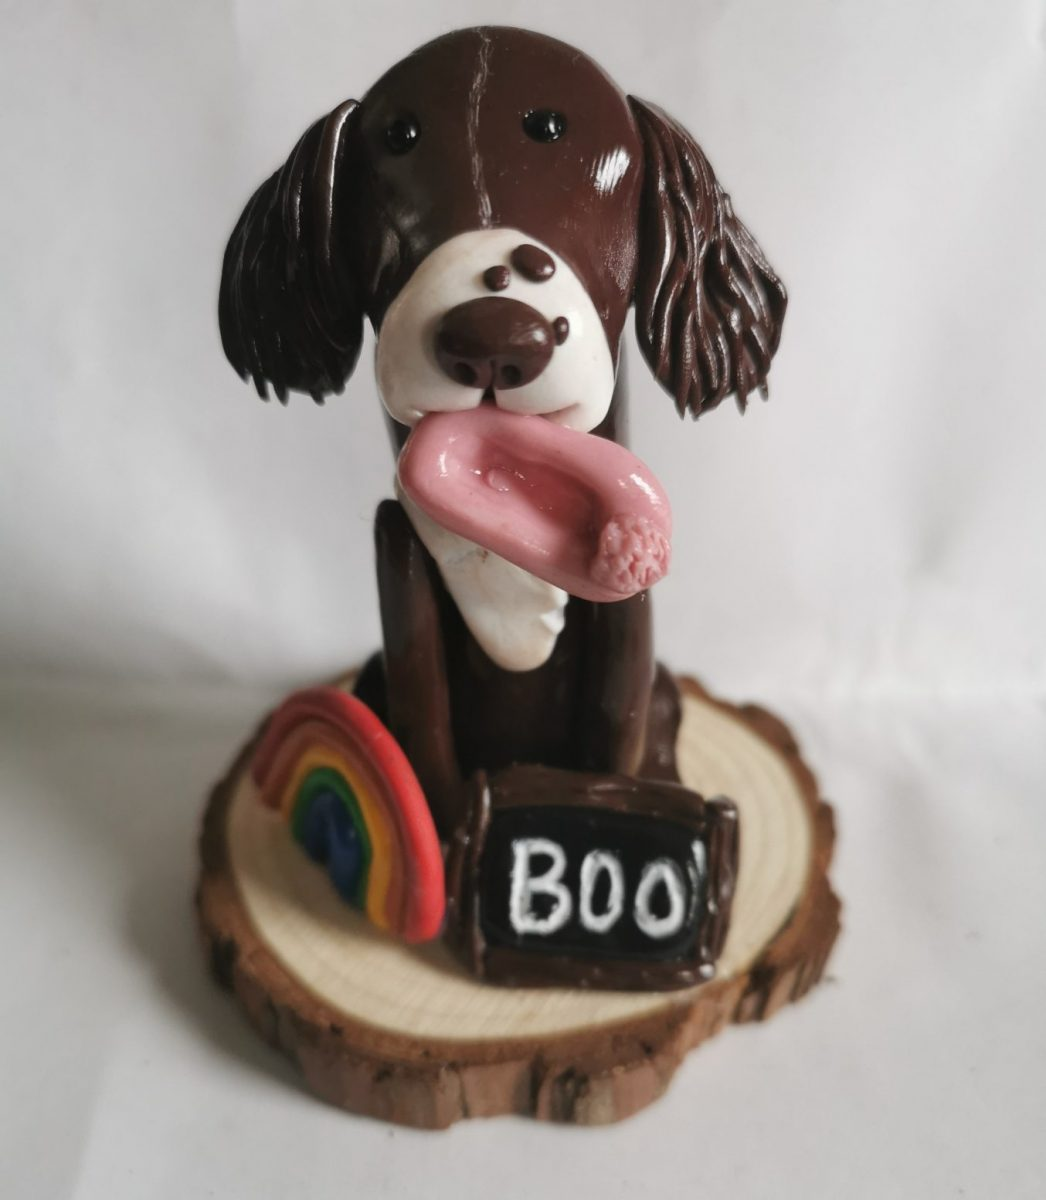 Clay Spaniel with slipper, rainbow and name